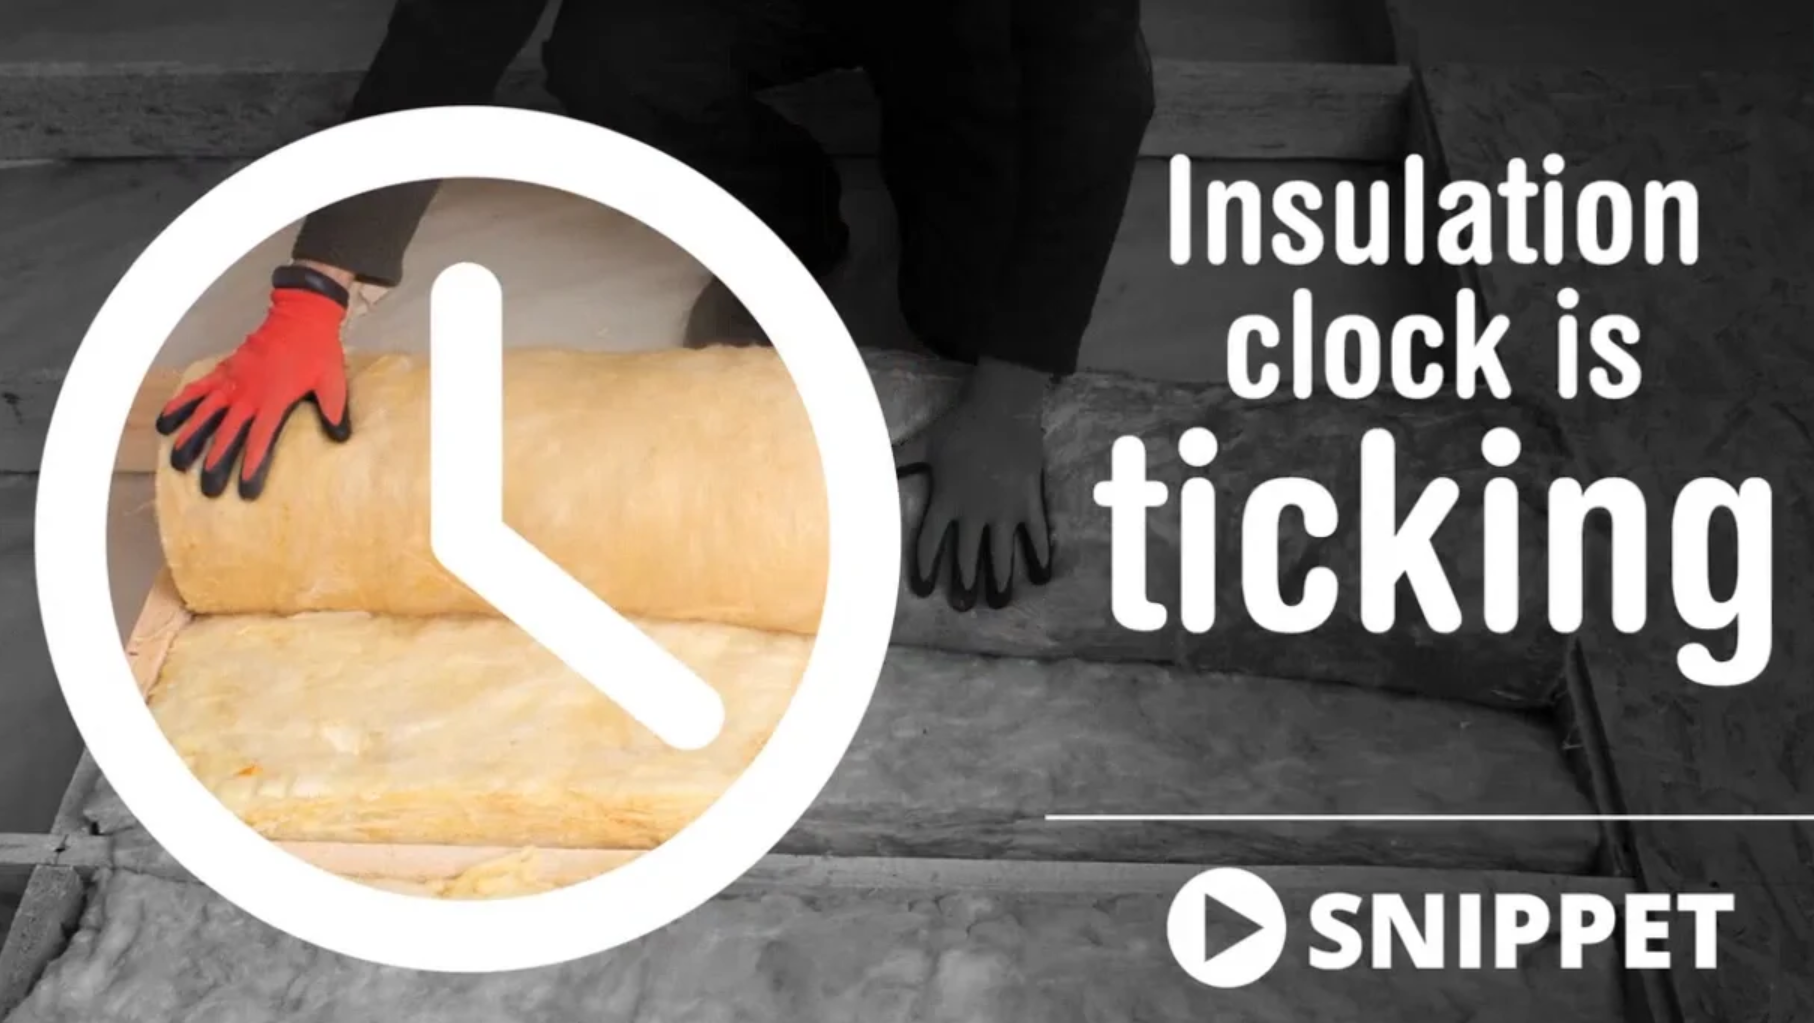 Insulation clock is ticking